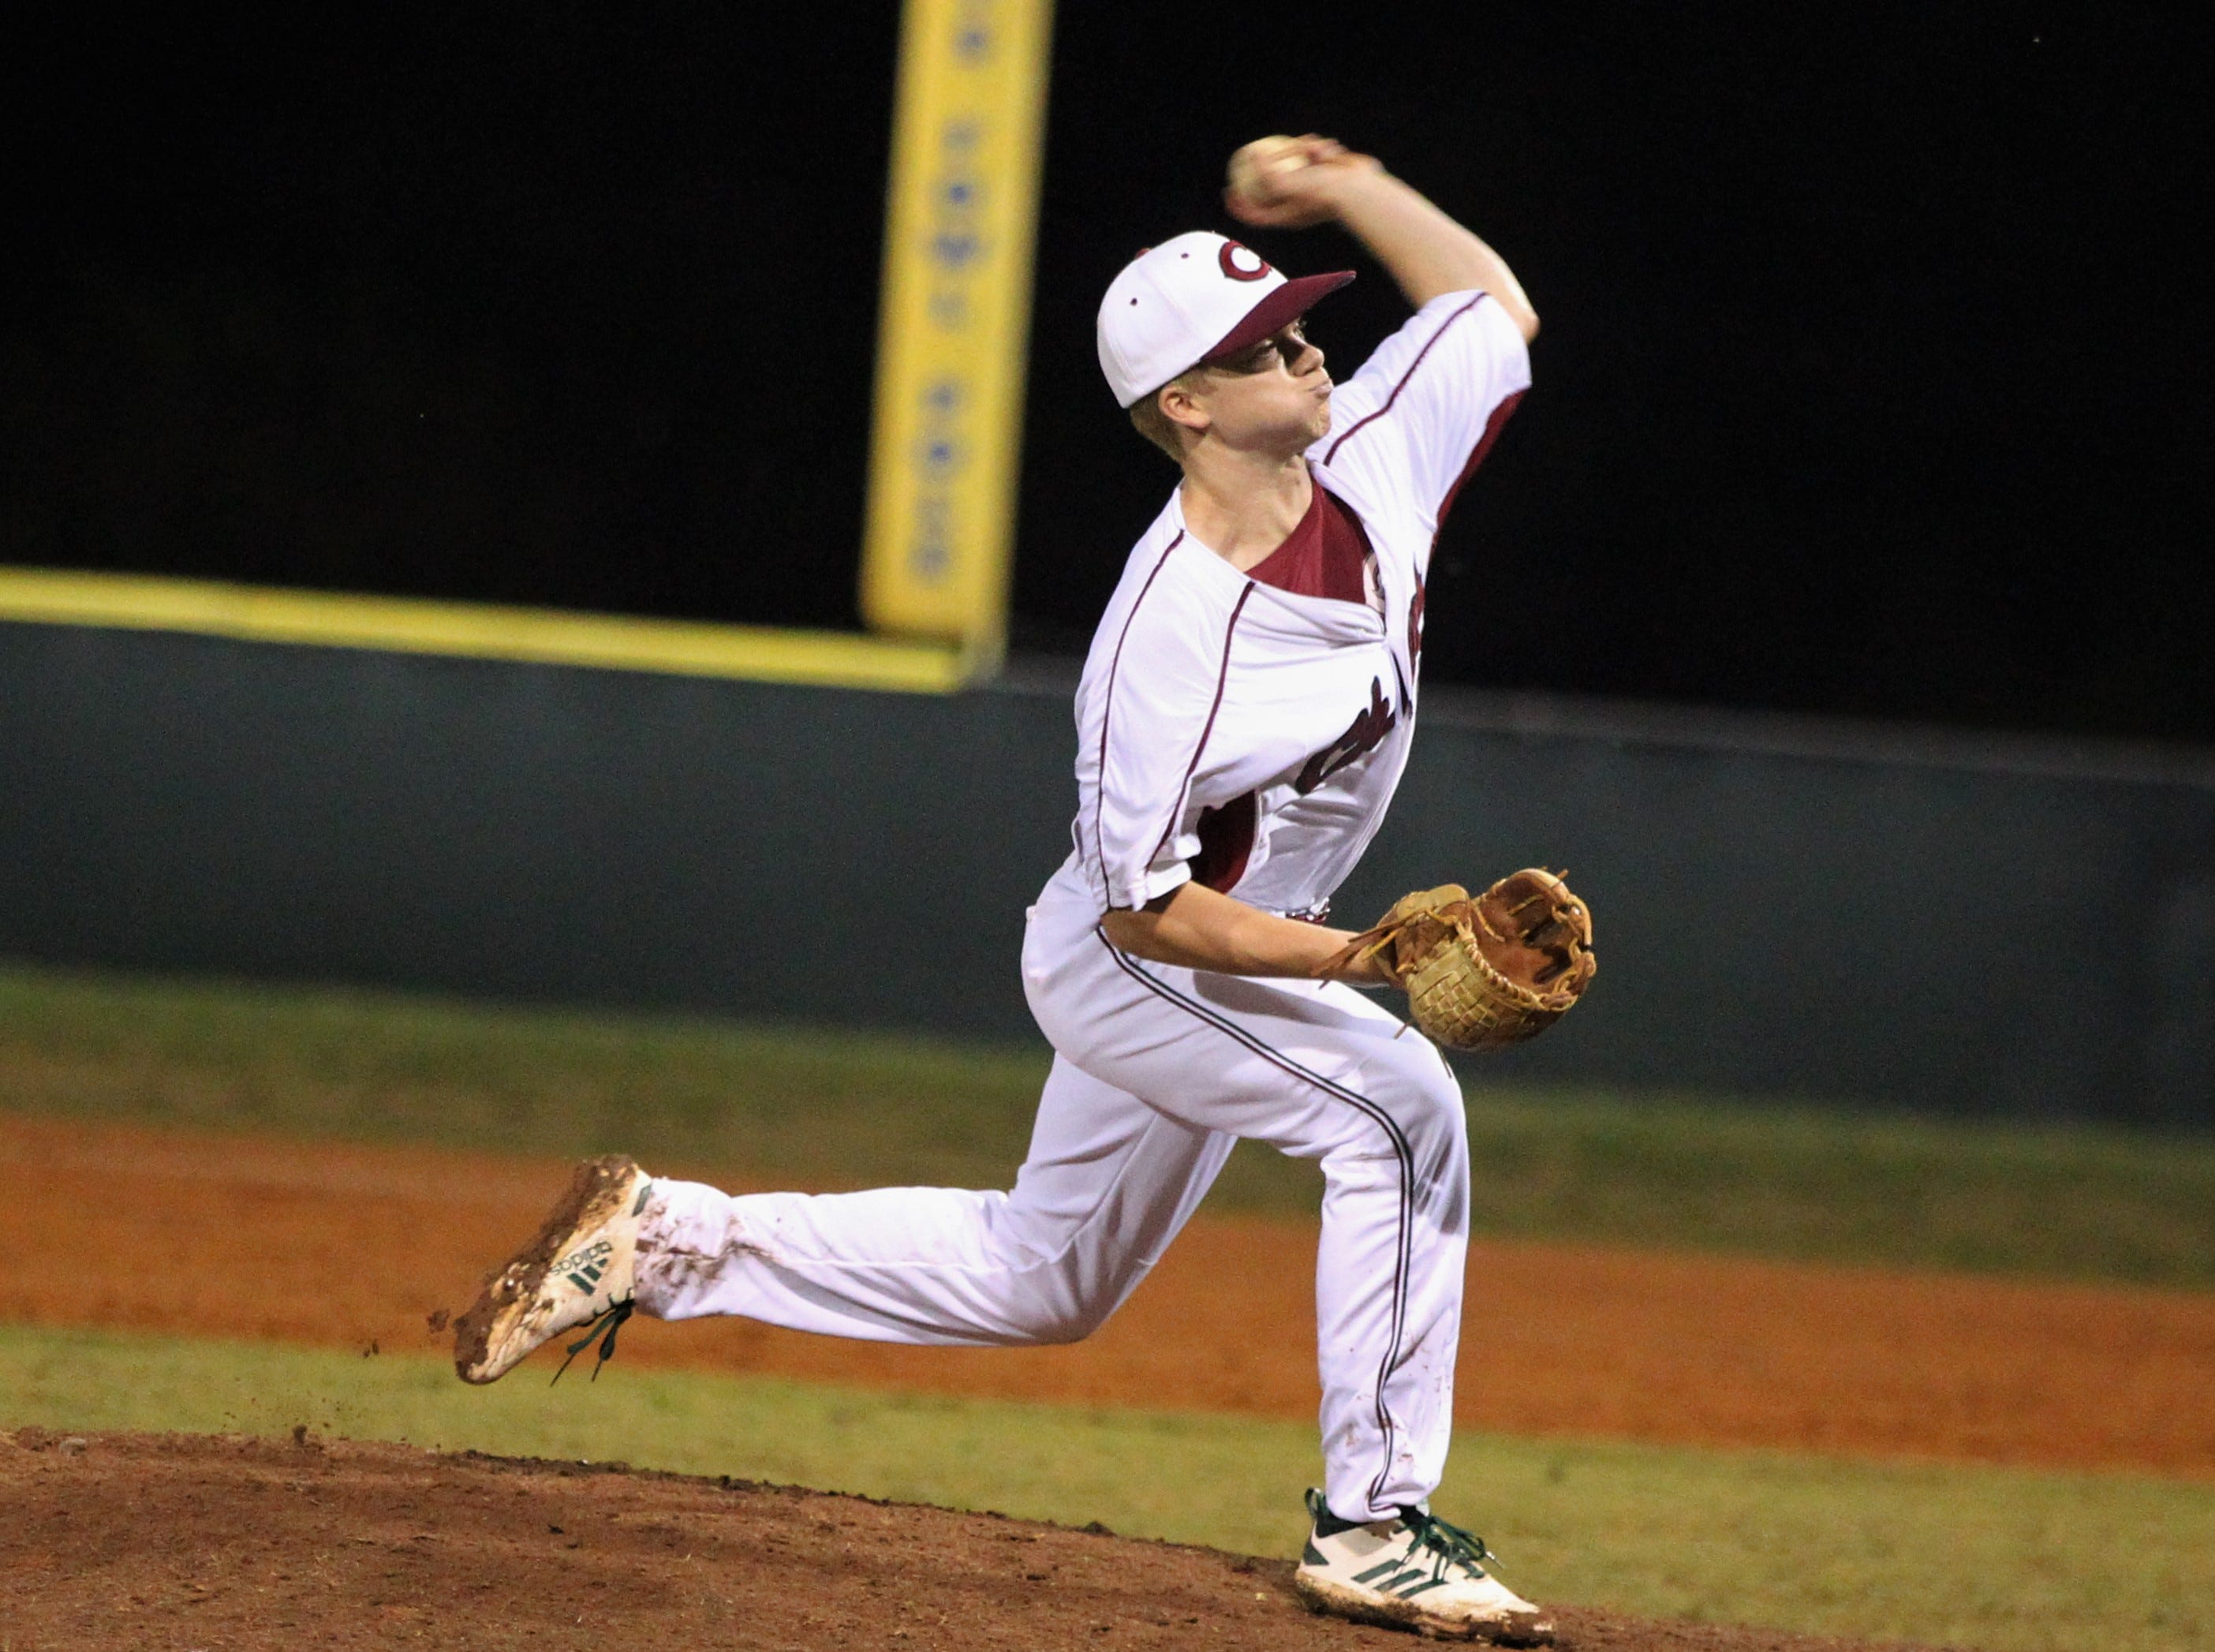 Chiles junior Will Landsberg pitches in relief as Chiles won an 11-6 home game against Leon on Friday, April 5, 2019, to force a season split. The Lions won 3-0 earlier in the week.